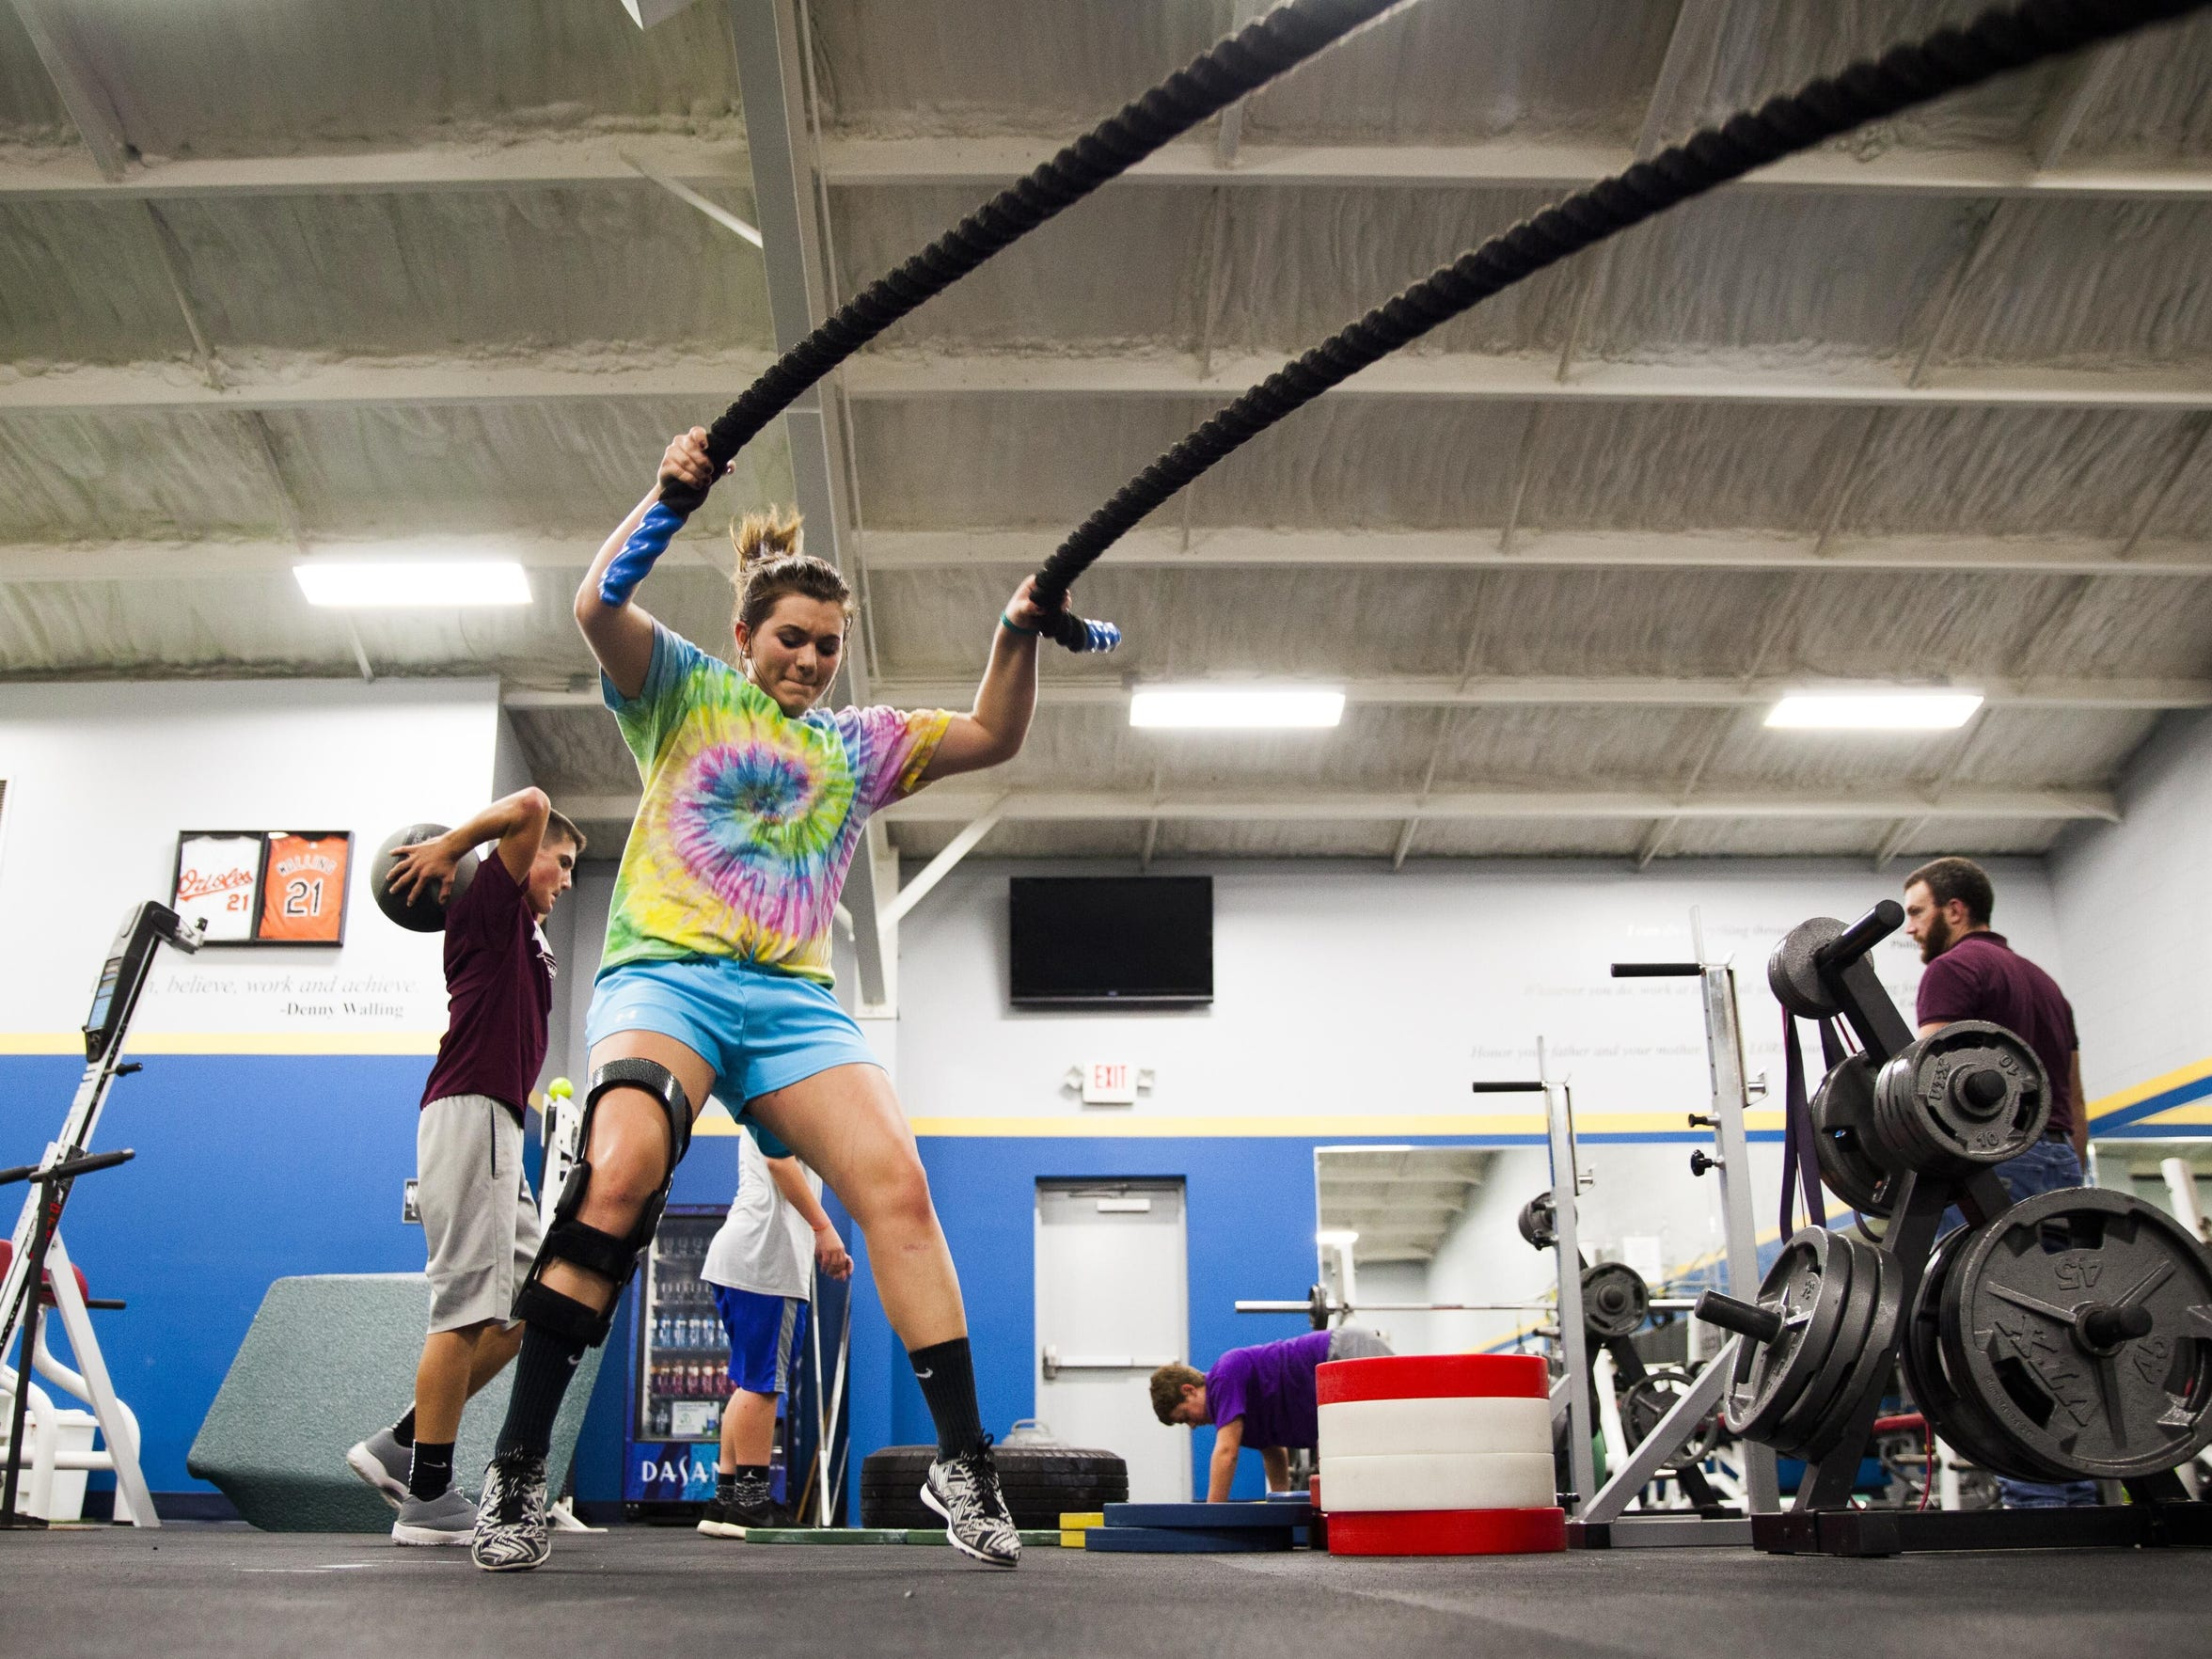 Kayley Campbell, who tore her ACL twice while playing softball at Stuarts Draft High School, works through physical therapy exercises on Thursday, Oct. 29, 2015.